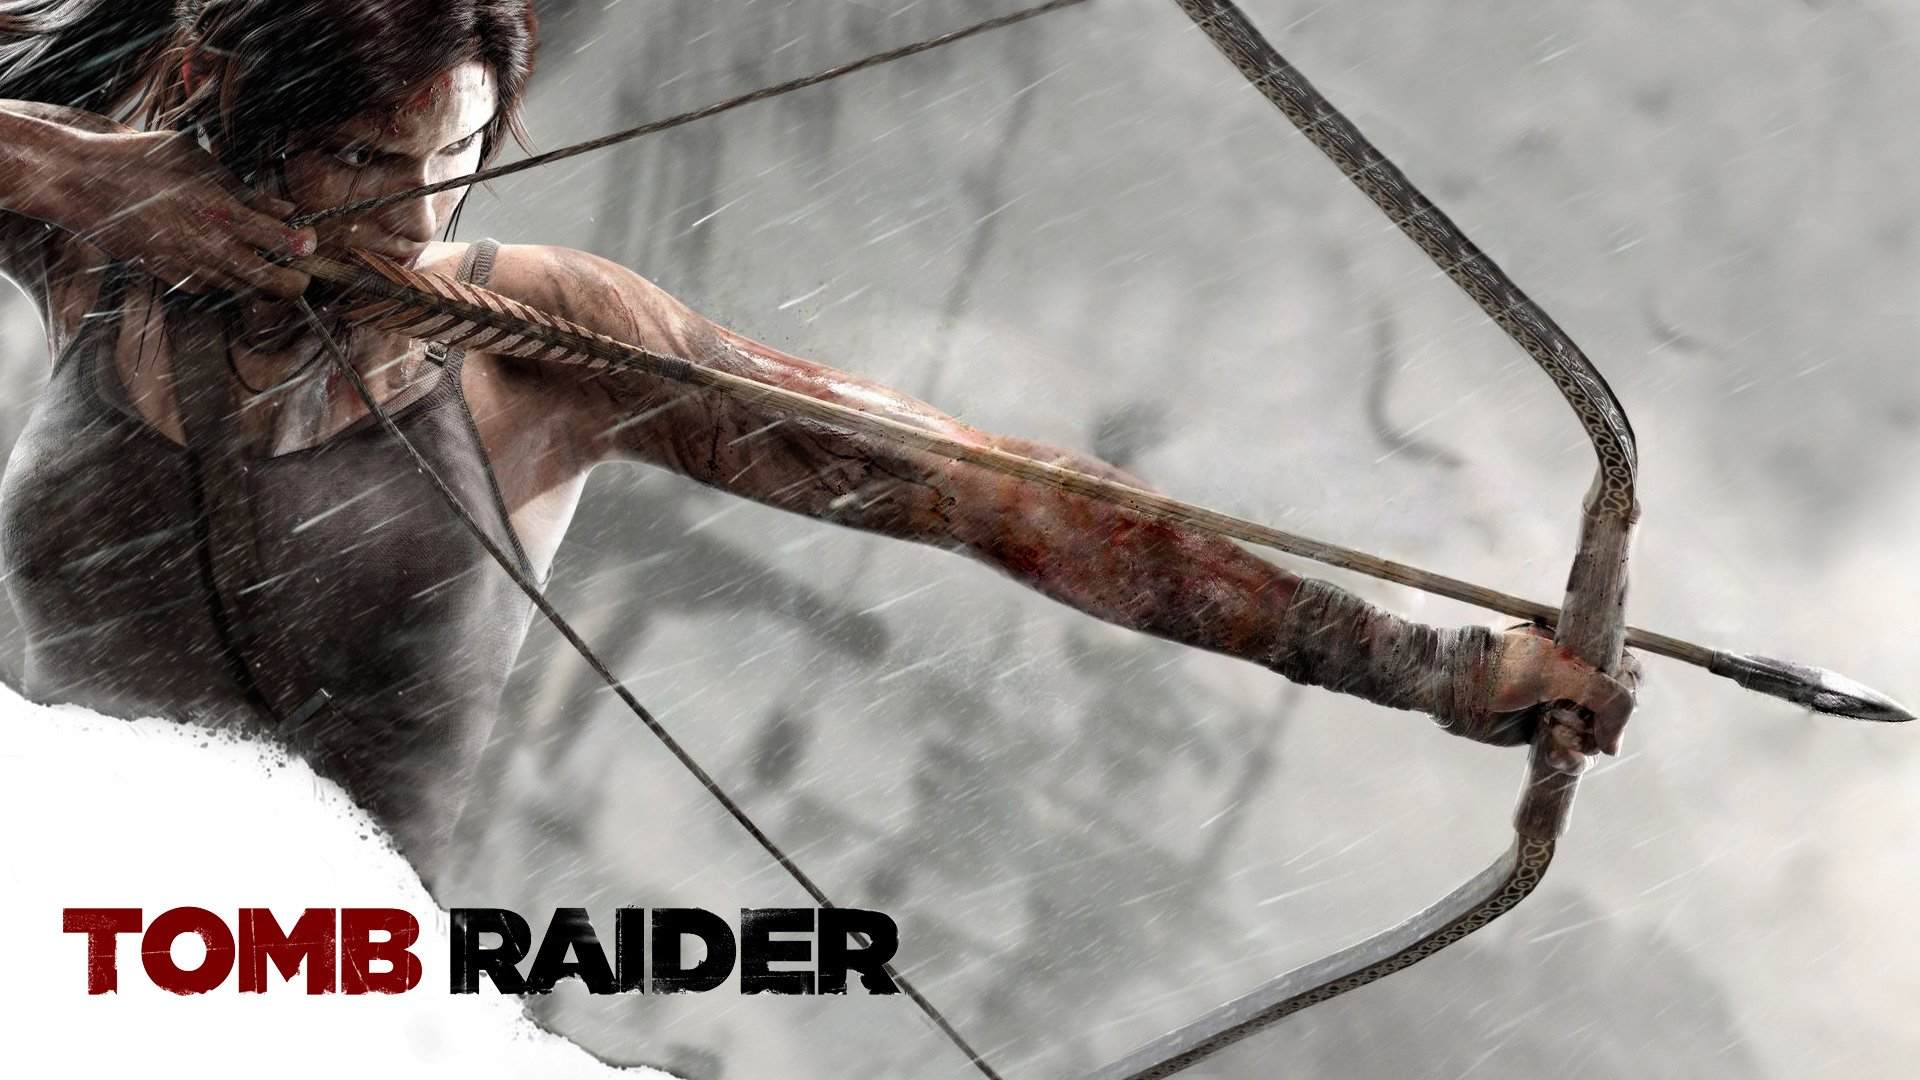 Tomb raider muschi naked movies